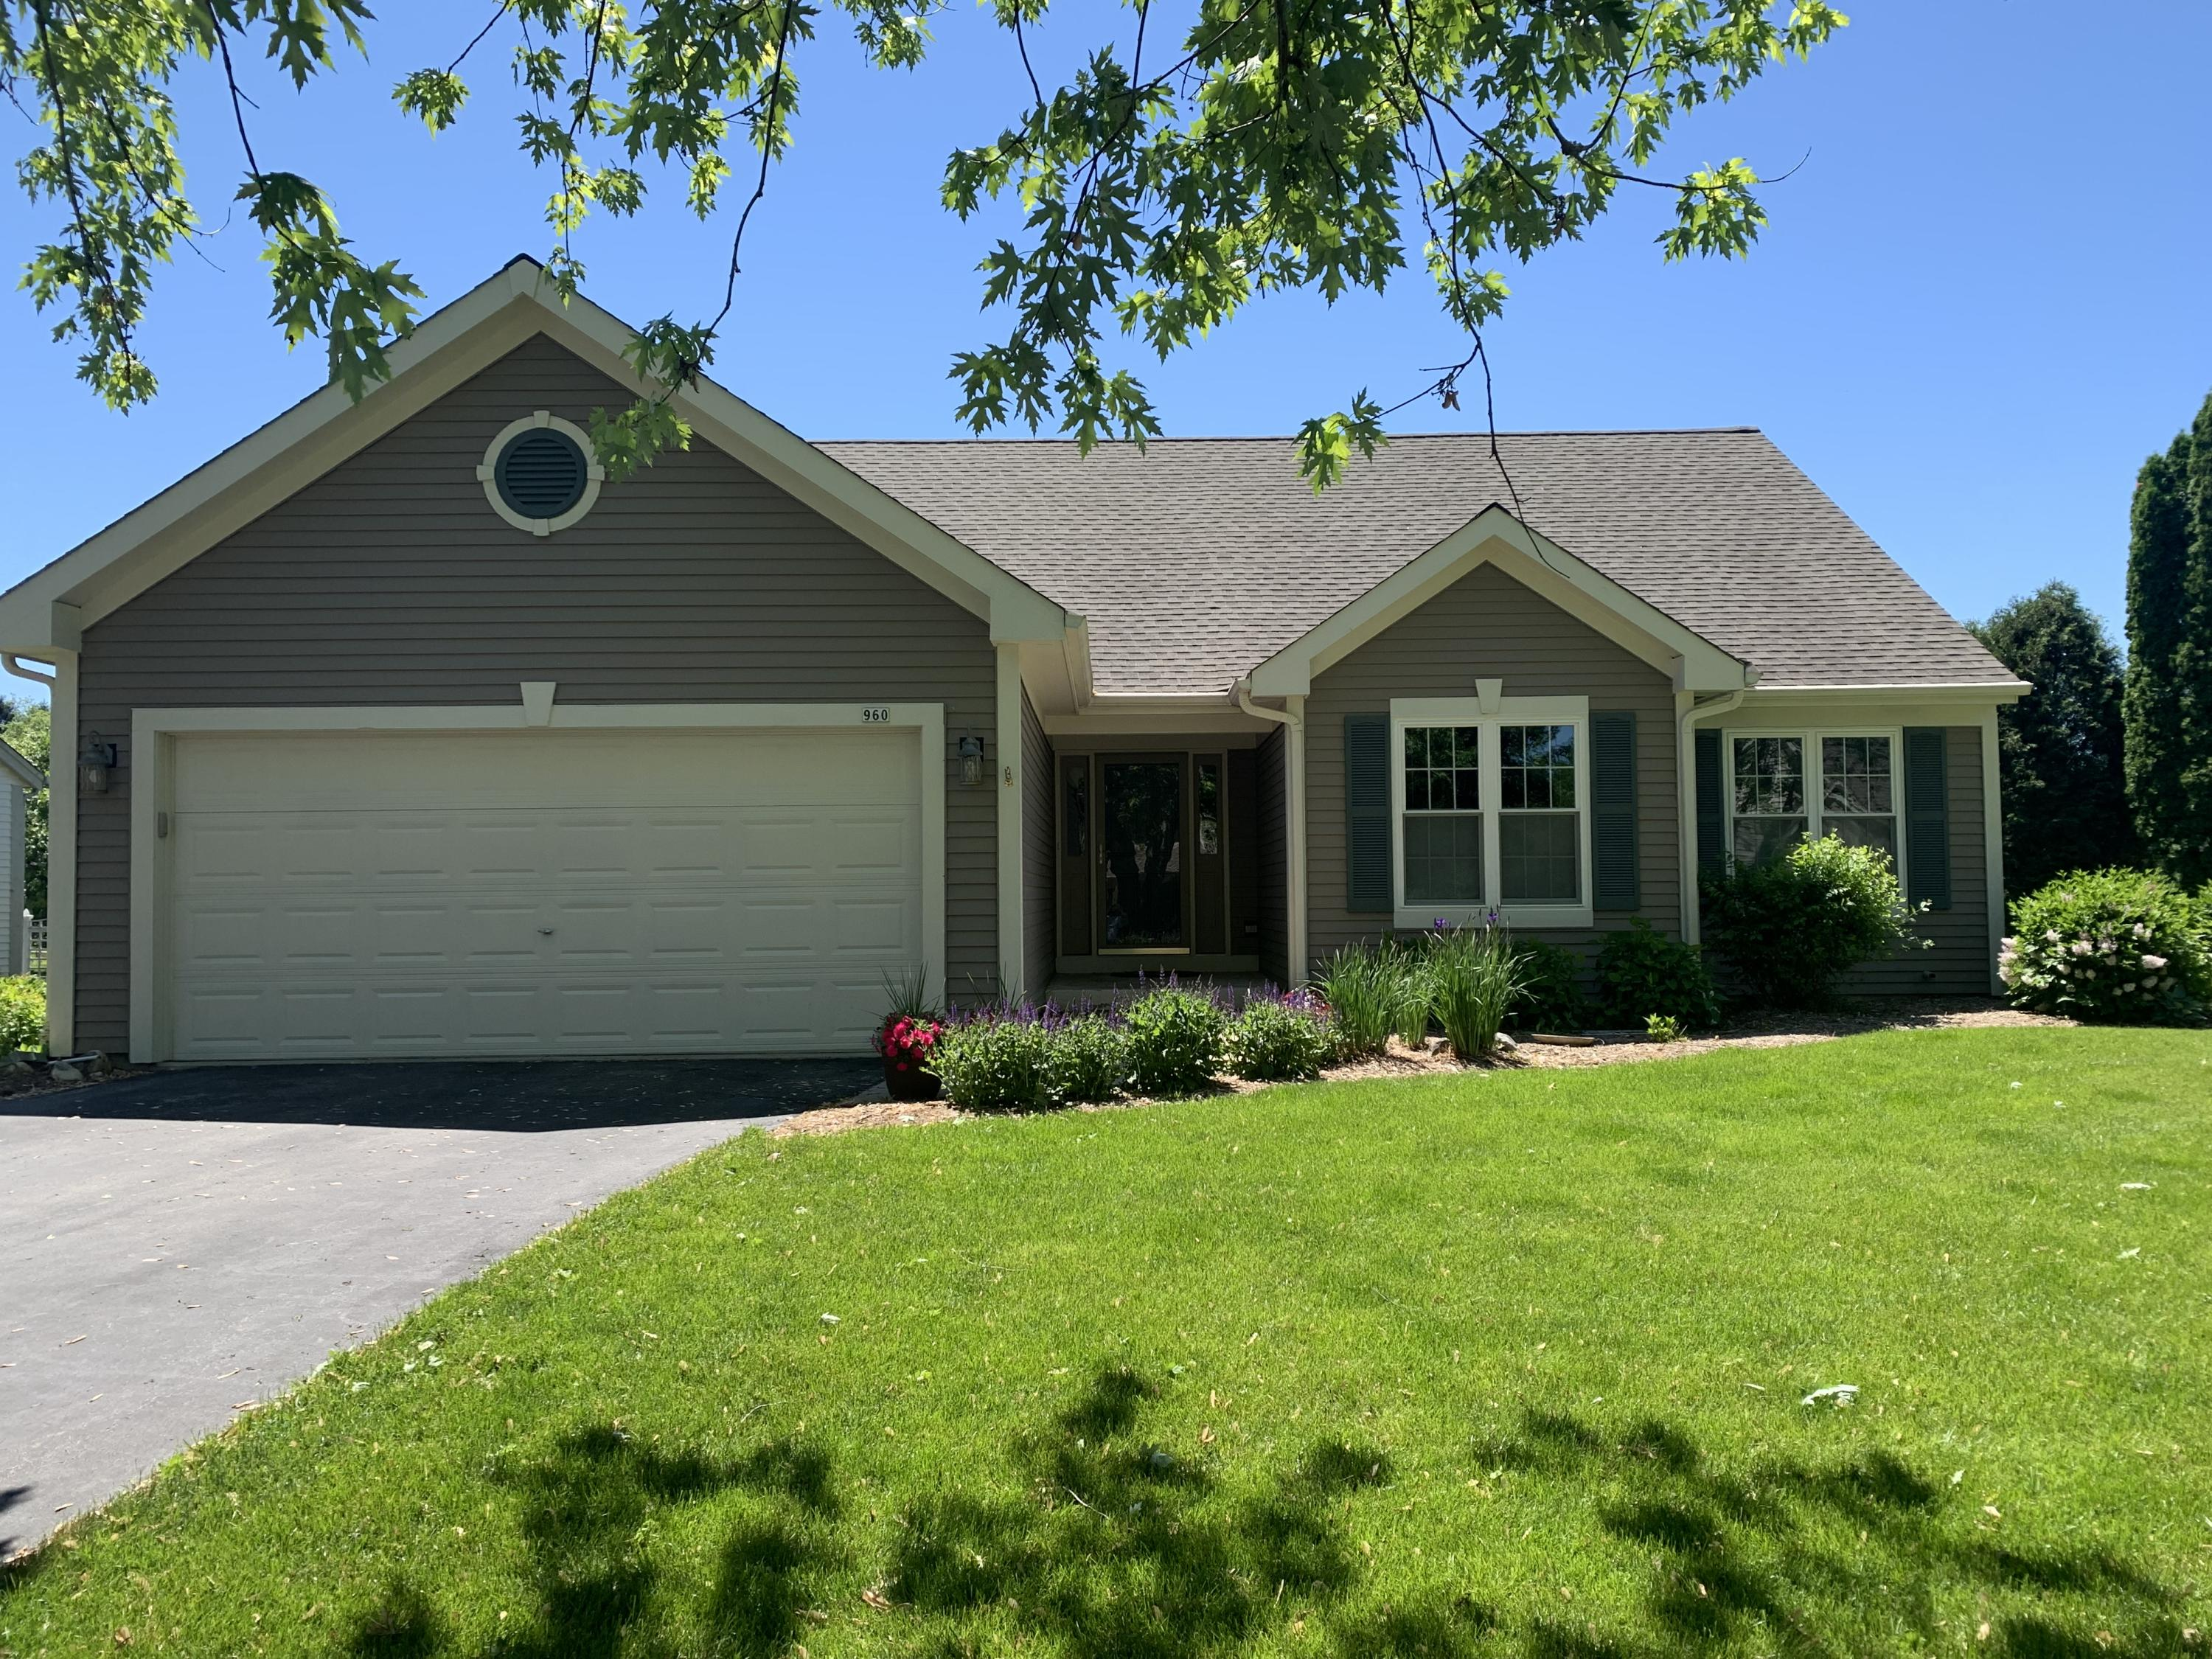 960 Rae Dr, Hartland, Wisconsin 53029, 3 Bedrooms Bedrooms, 6 Rooms Rooms,2 BathroomsBathrooms,Single-Family,For Sale,Rae Dr,1743313